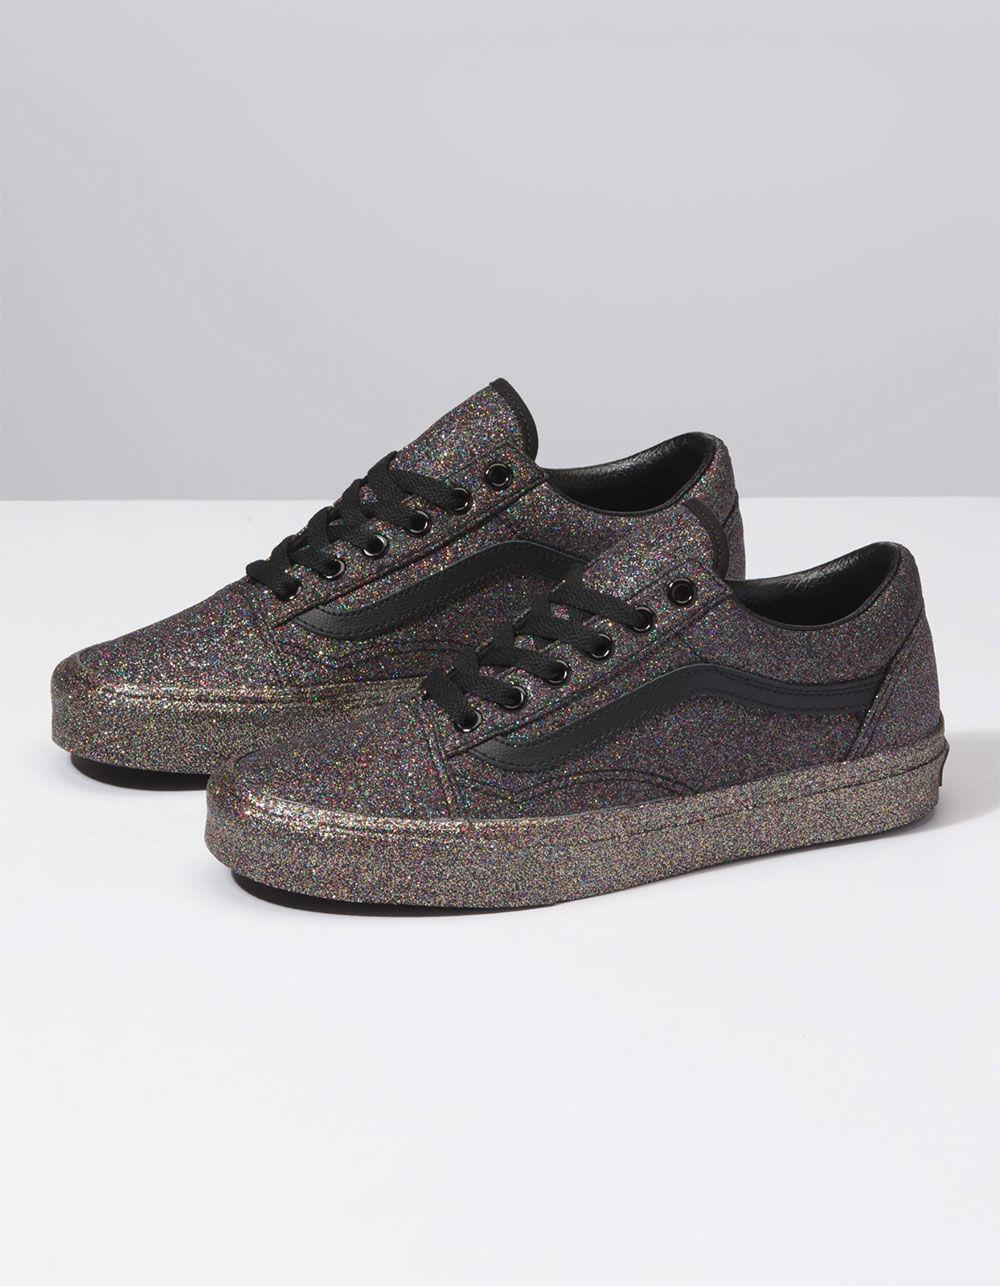 35df7ed186 Lyst - Vans Rainbow Glitter Old Skool Womens Shoes in Black - Save 46%